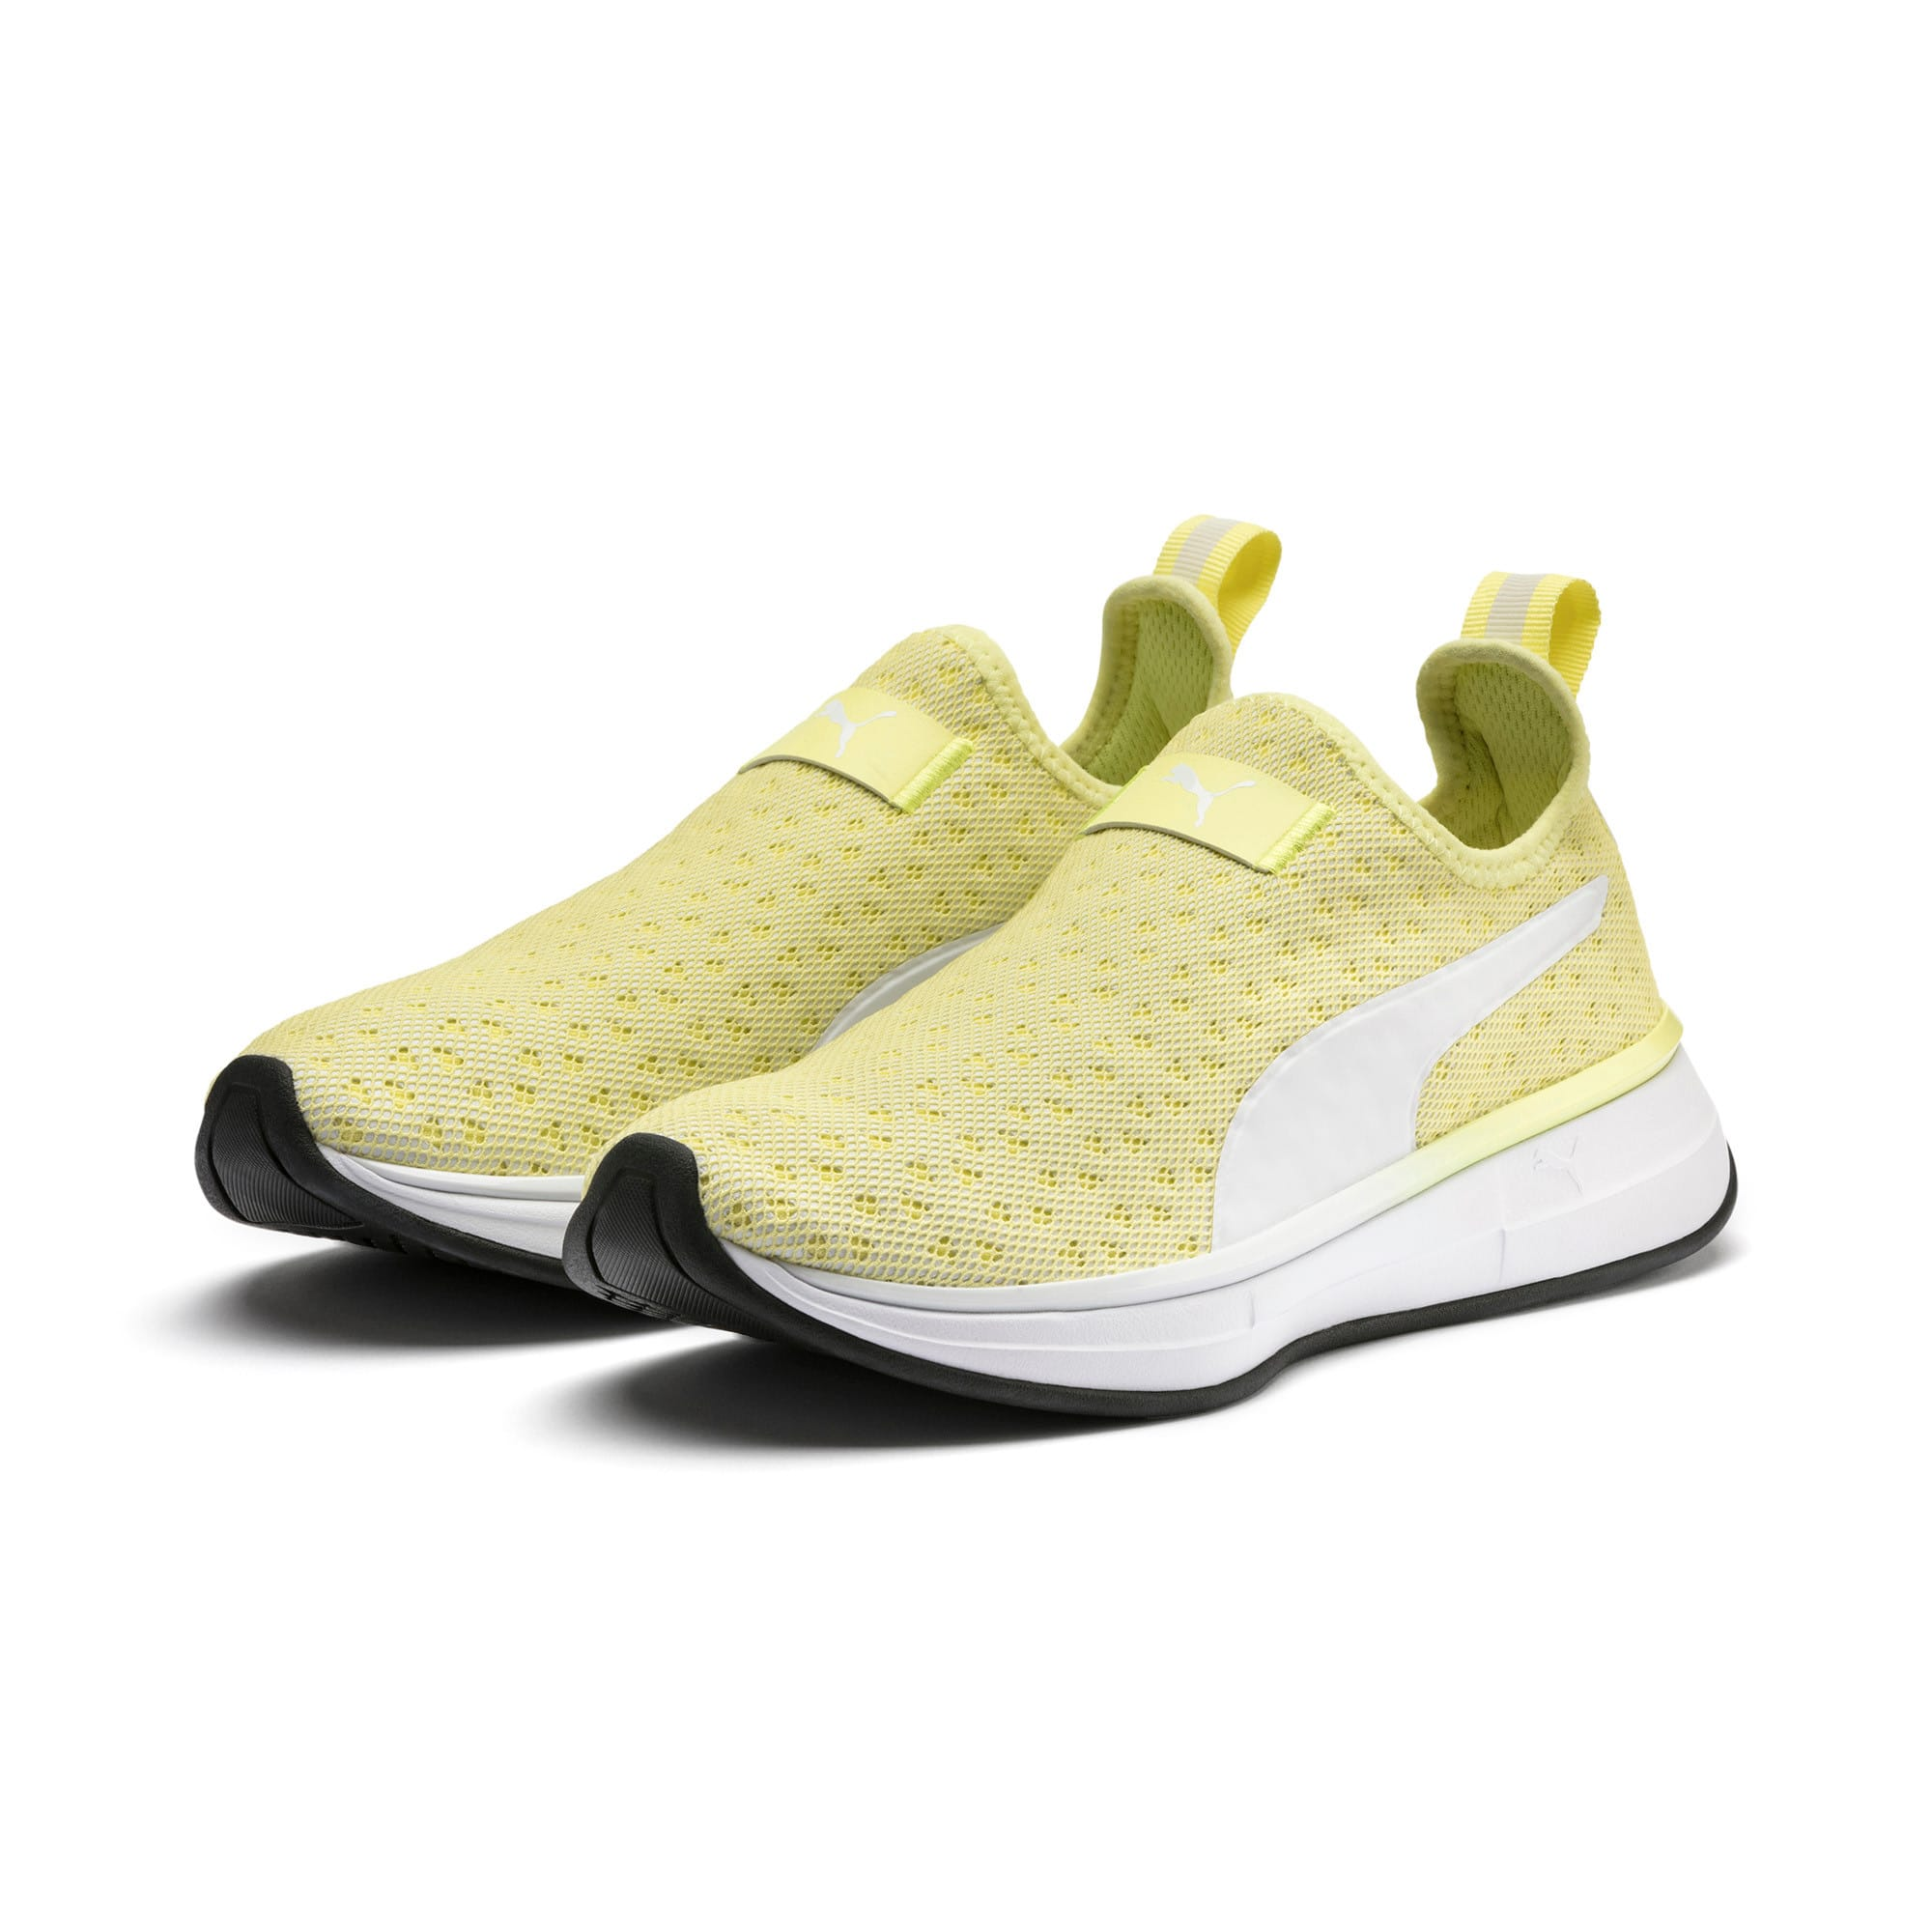 Thumbnail 3 of SG Slip-on Bright Women's Training Shoes, YELLOW-Puma White-Puma Black, medium